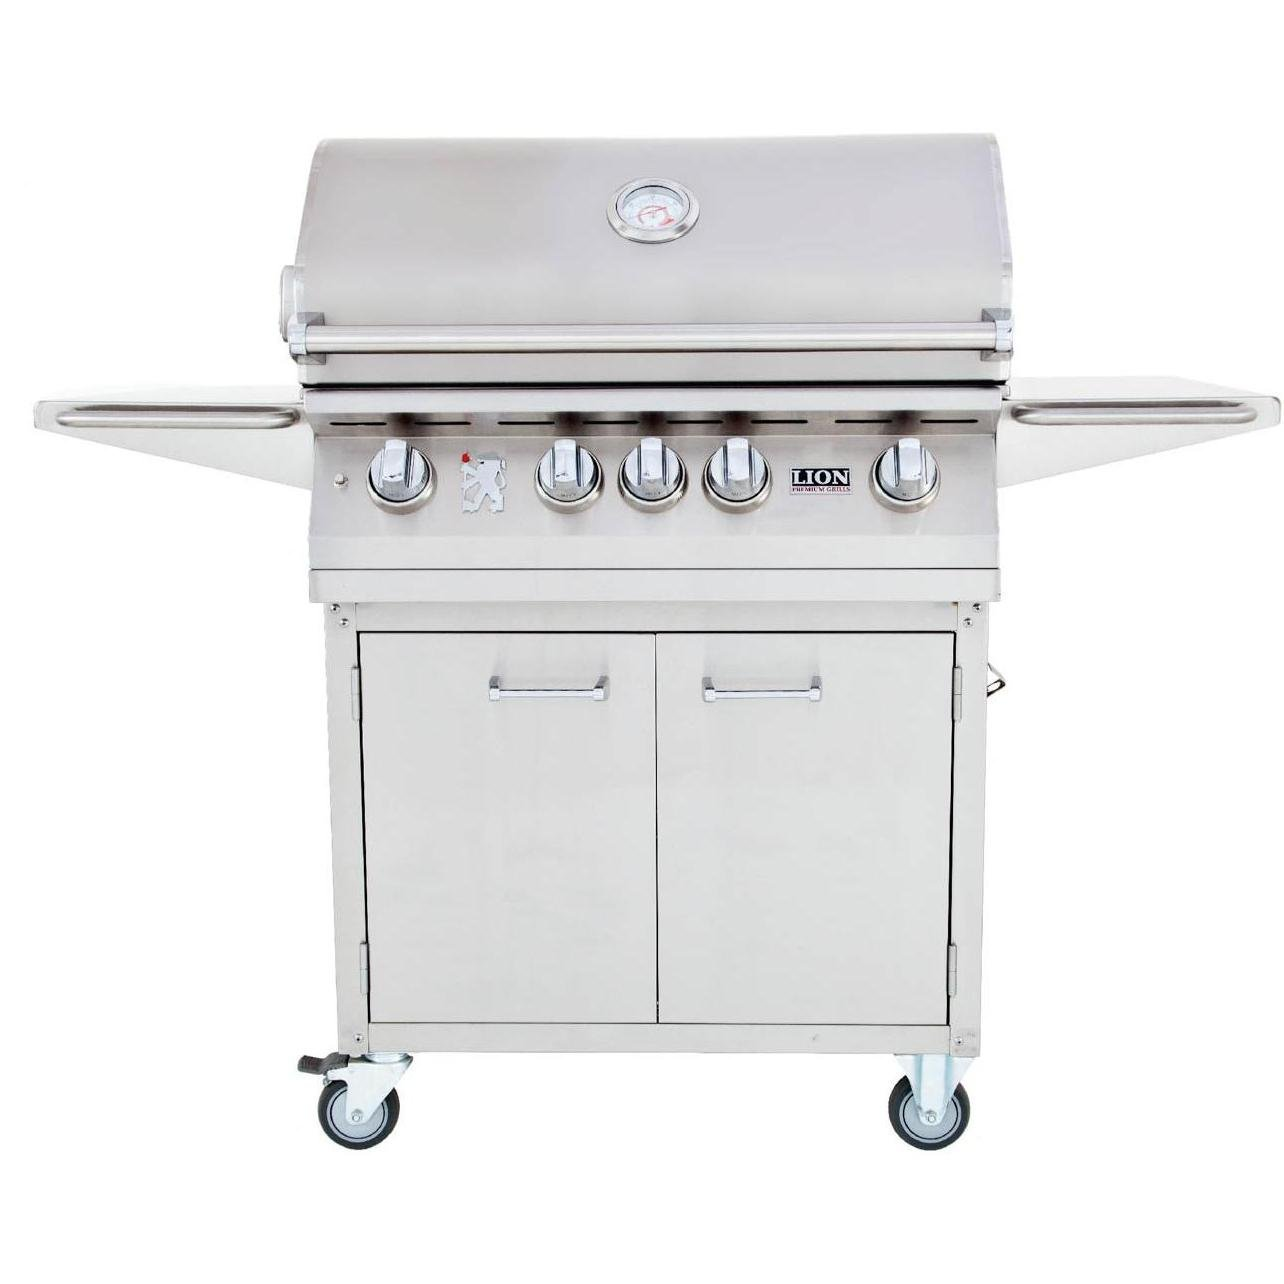 Lion 32-Inch Stainless Steel Freestanding Liquid Propane Gas Grill, Best Luxury Gas Grills